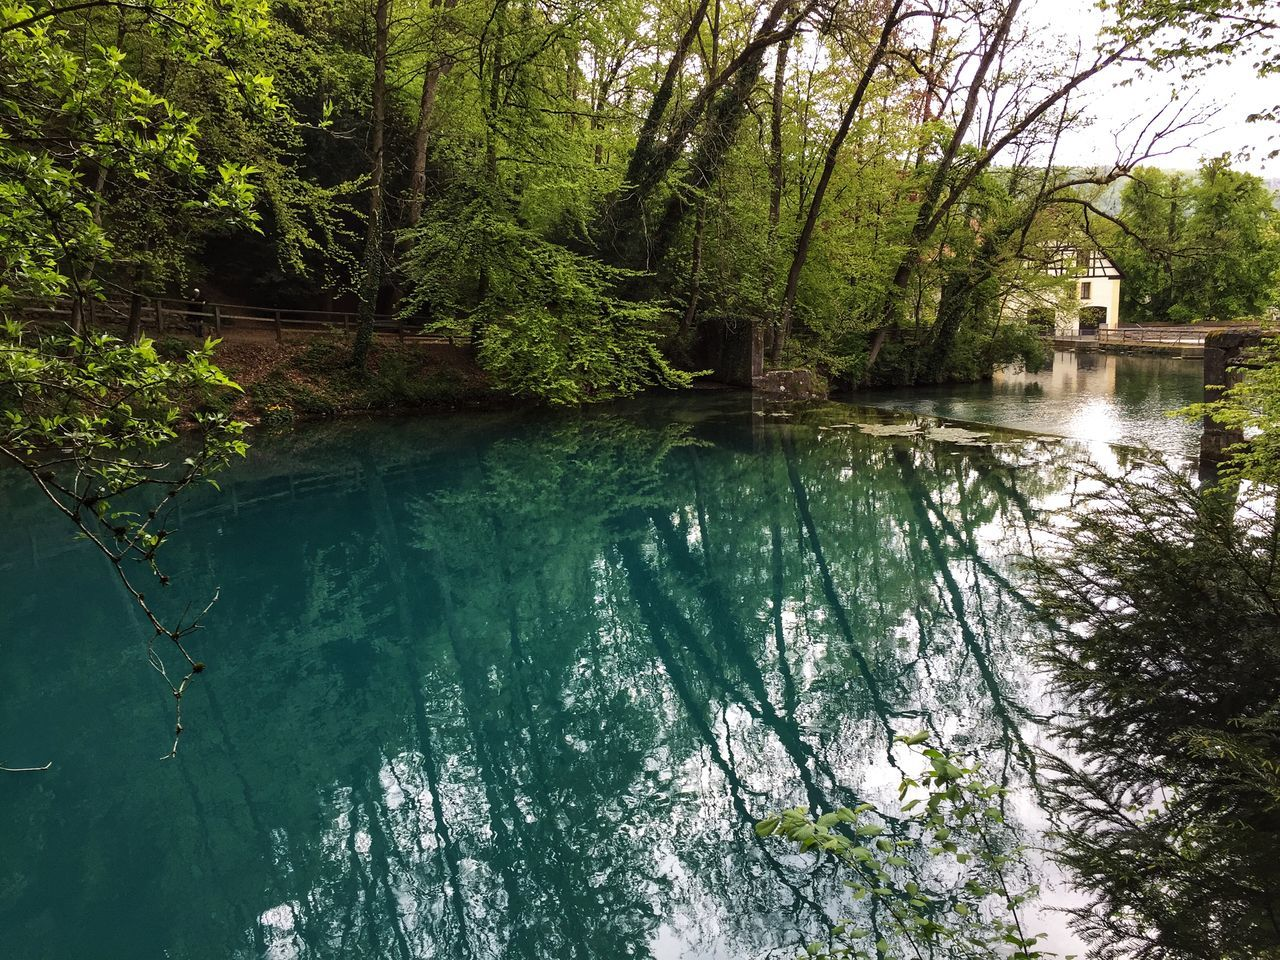 tree, water, plant, nature, no people, day, beauty in nature, tranquility, built structure, lake, forest, reflection, architecture, growth, tranquil scene, waterfront, outdoors, scenics - nature, woodland, turquoise colored